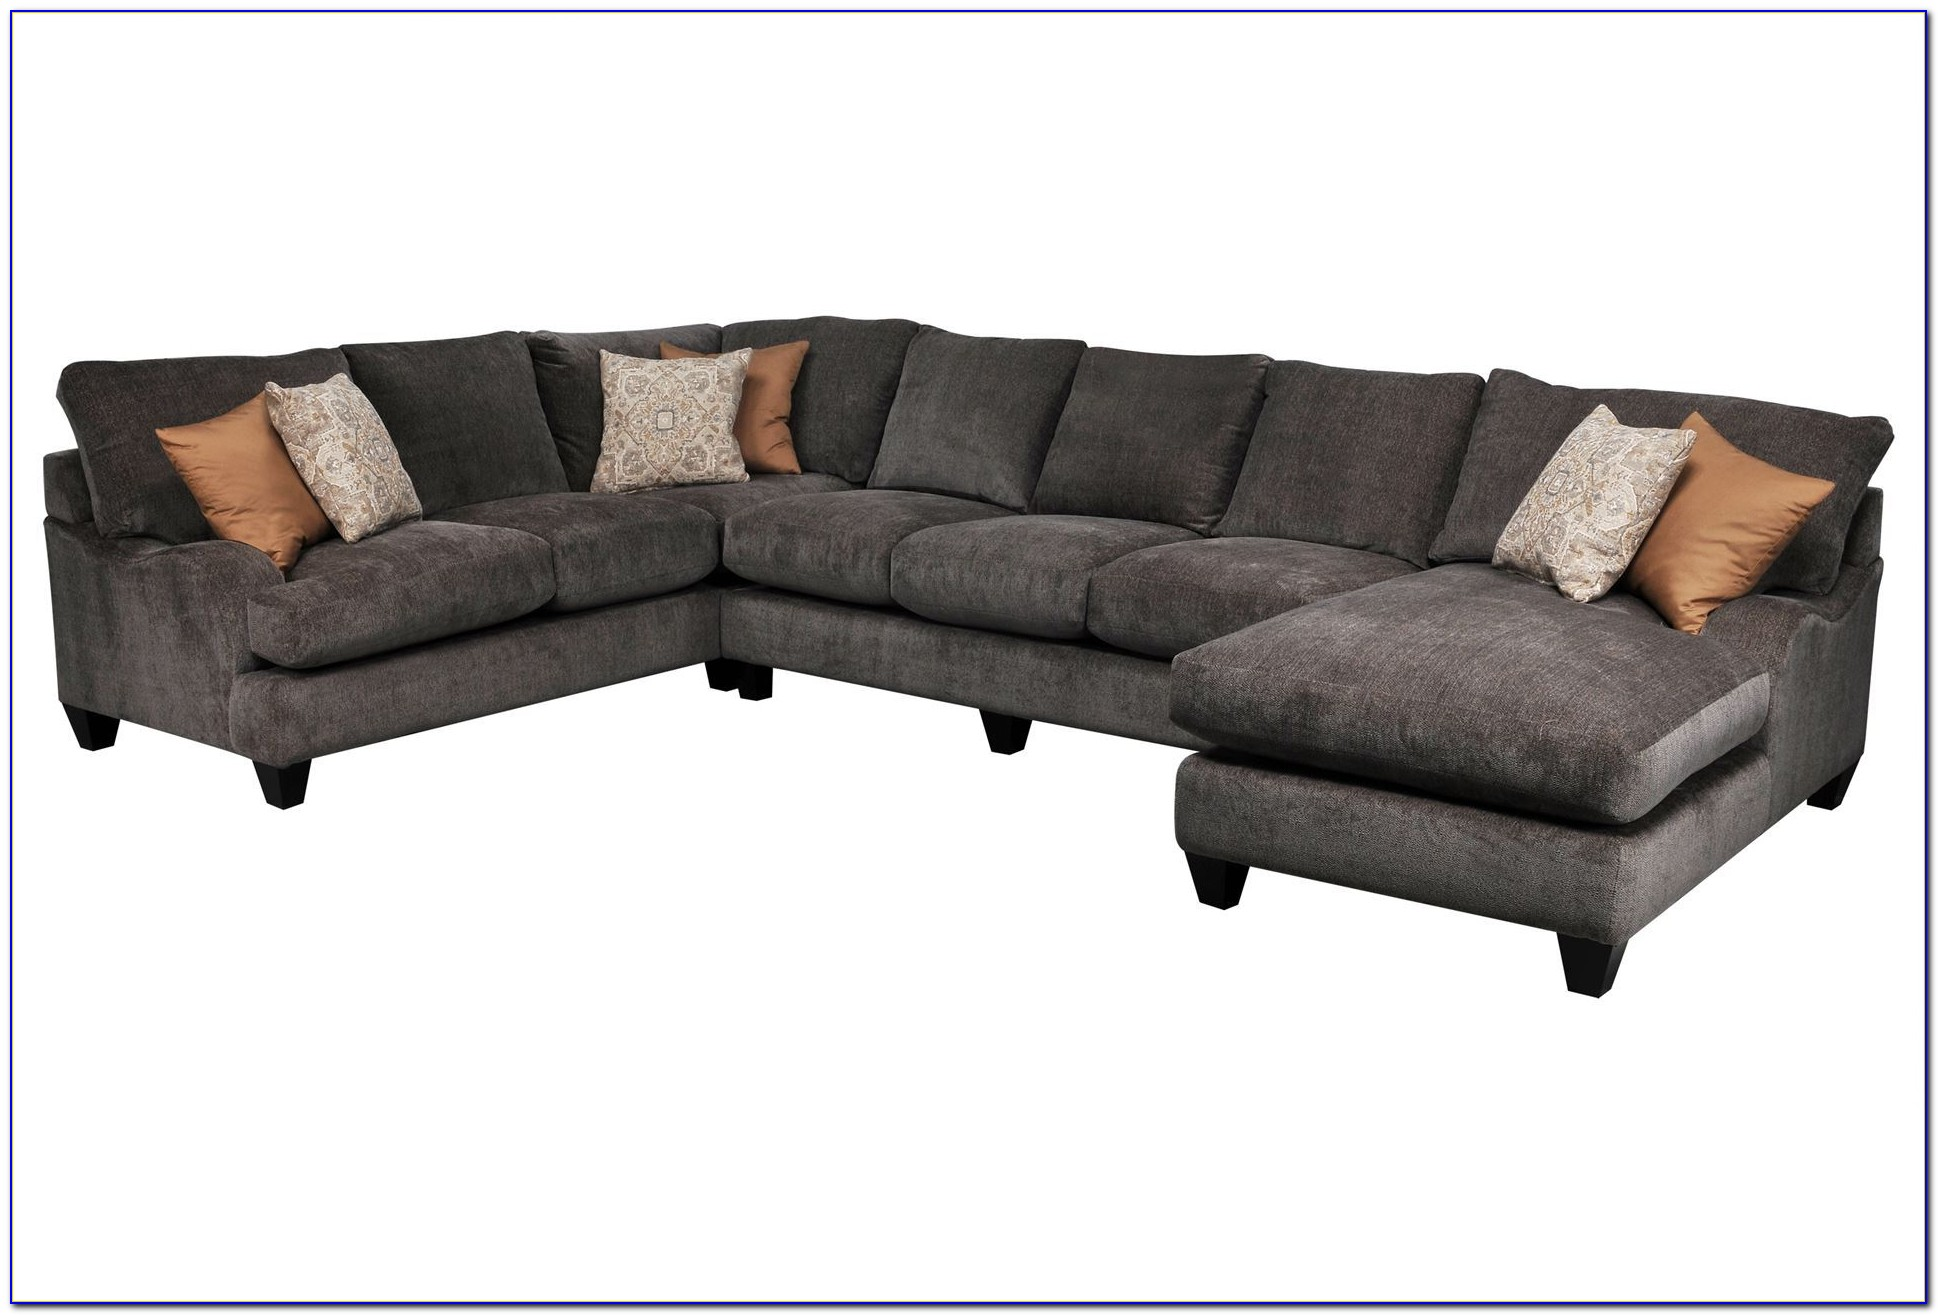 3 Pc Sectional Sofa With Chaise